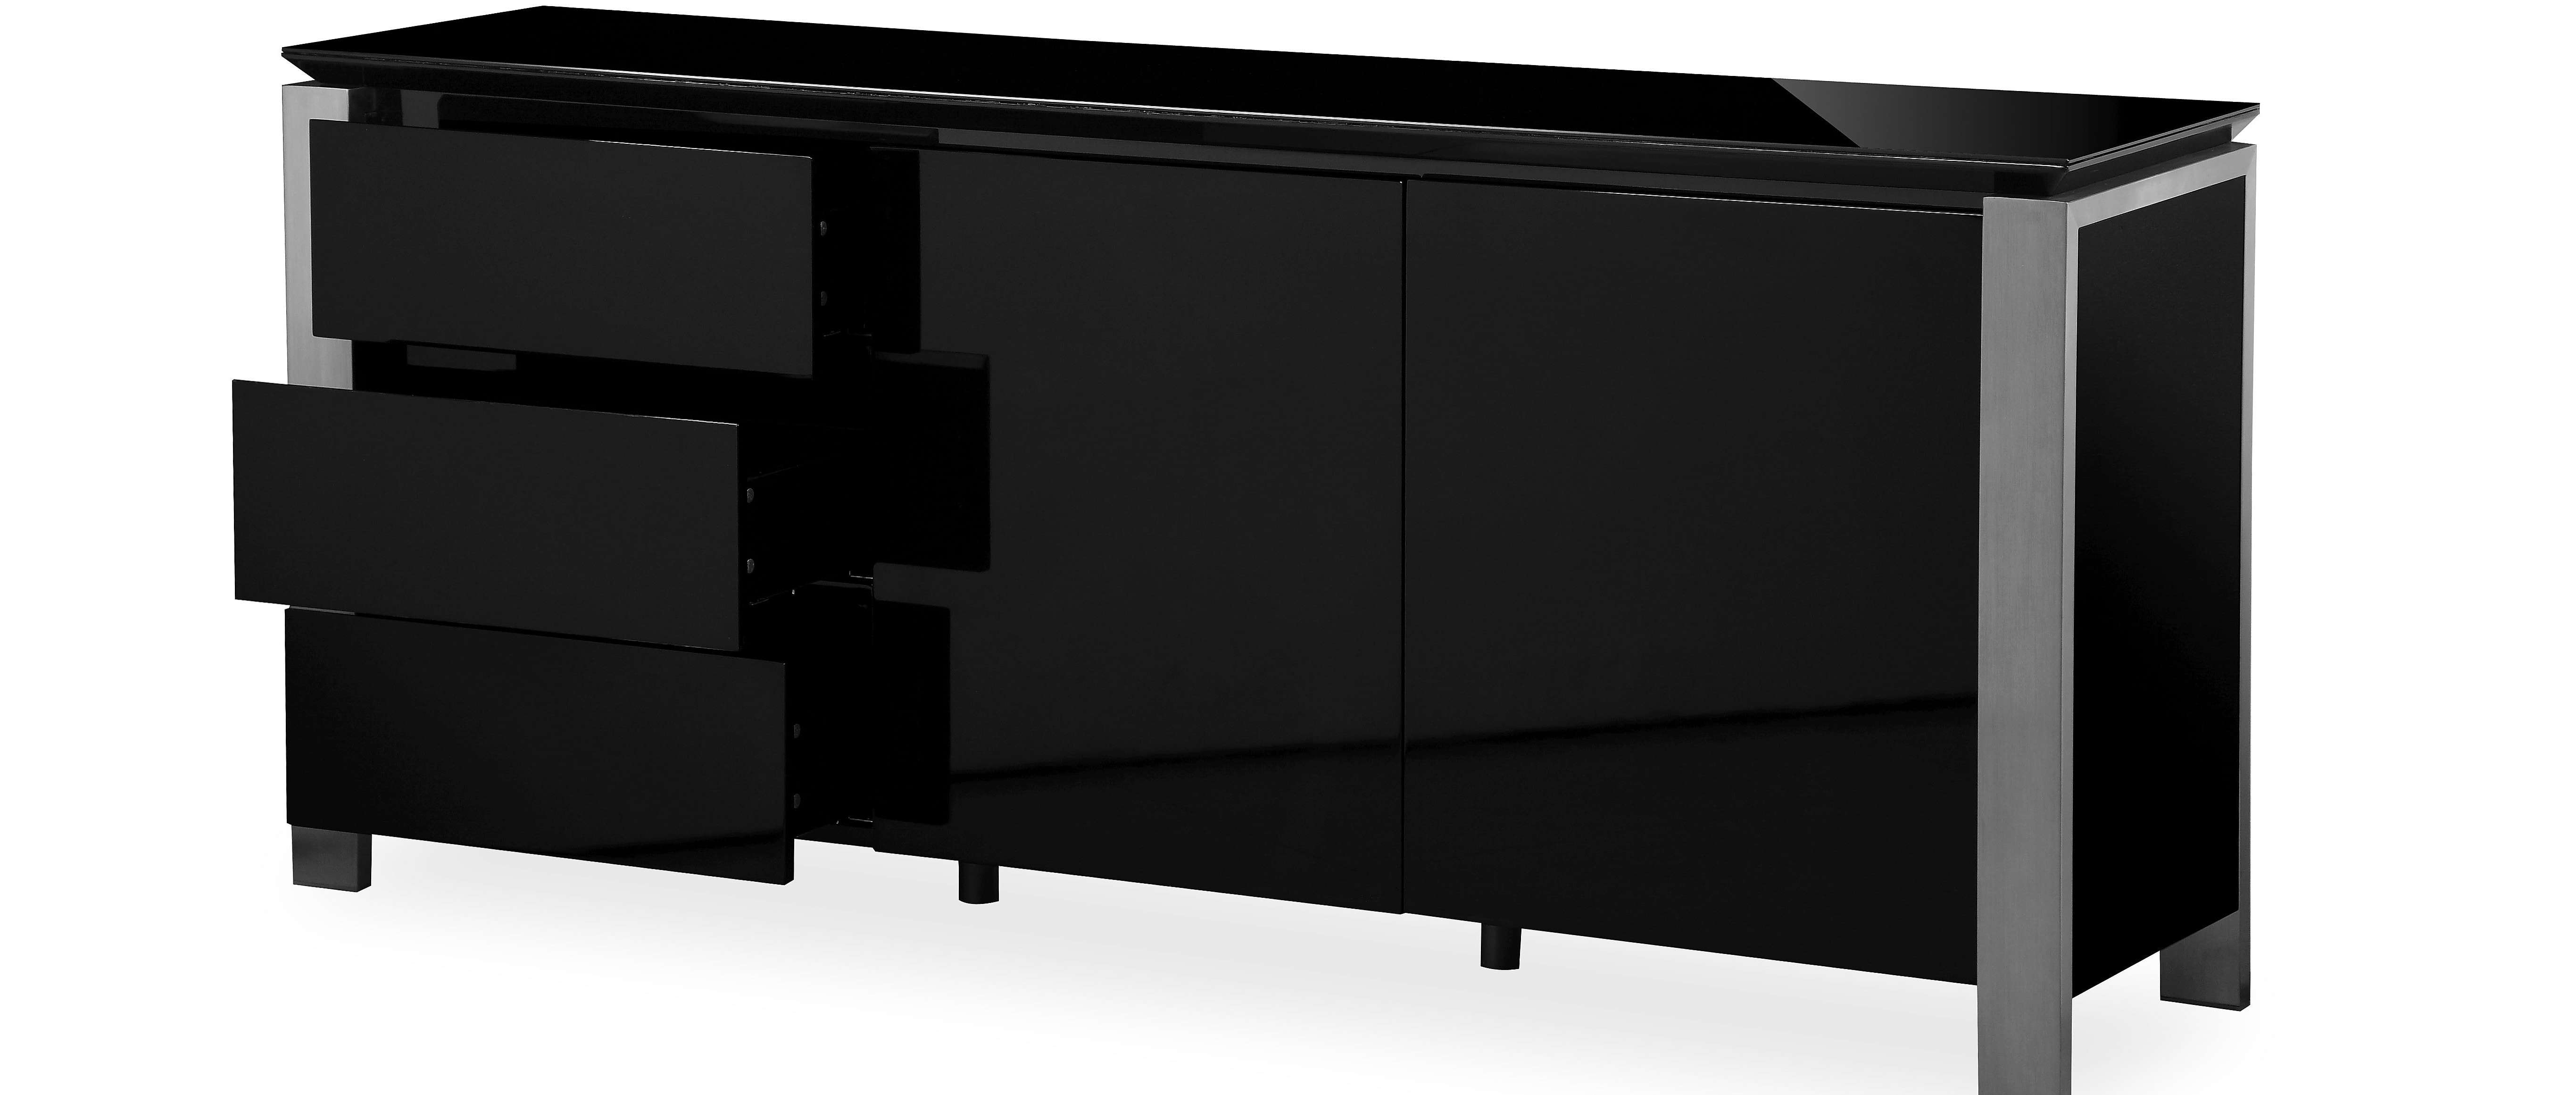 Tribeca – Extra Large Sideboard – Black High Gloss Inside Extra Deep Sideboards (View 18 of 20)